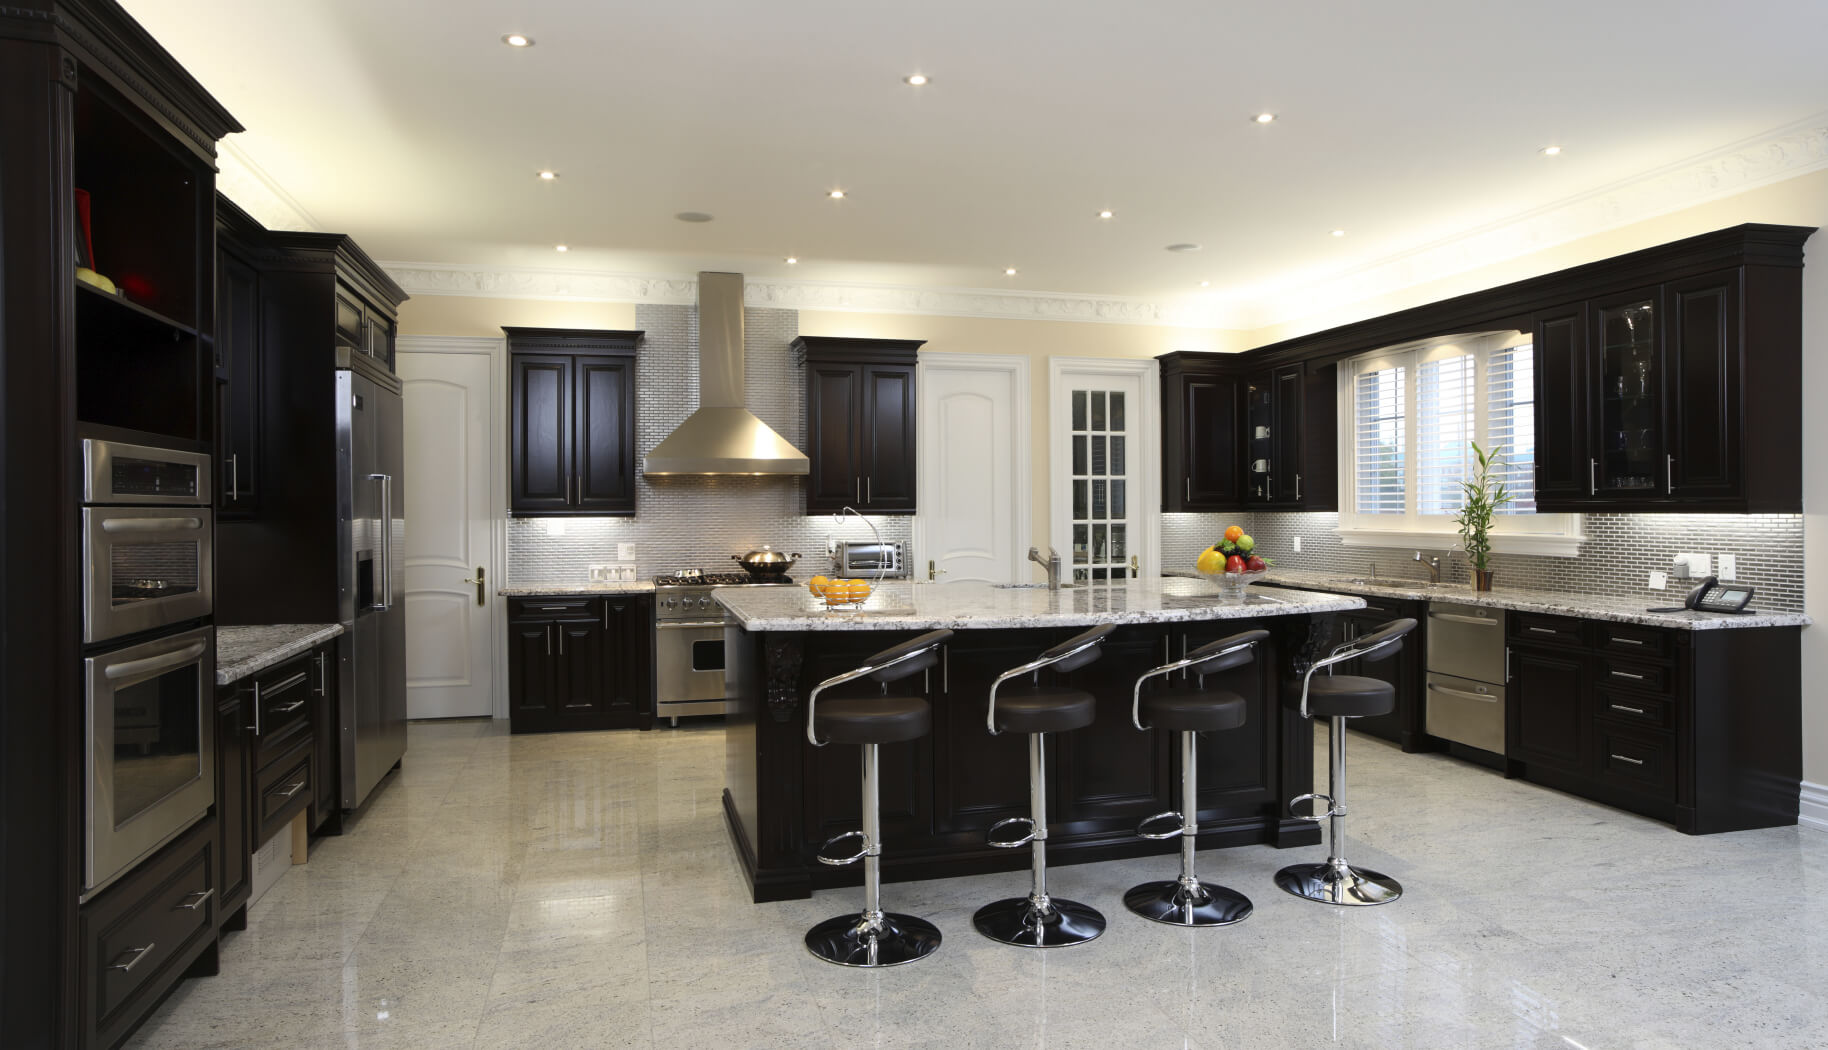 Kitchens With Black Appliances 52 Dark Kitchens With Dark Wood And Black Kitchen Cabinets